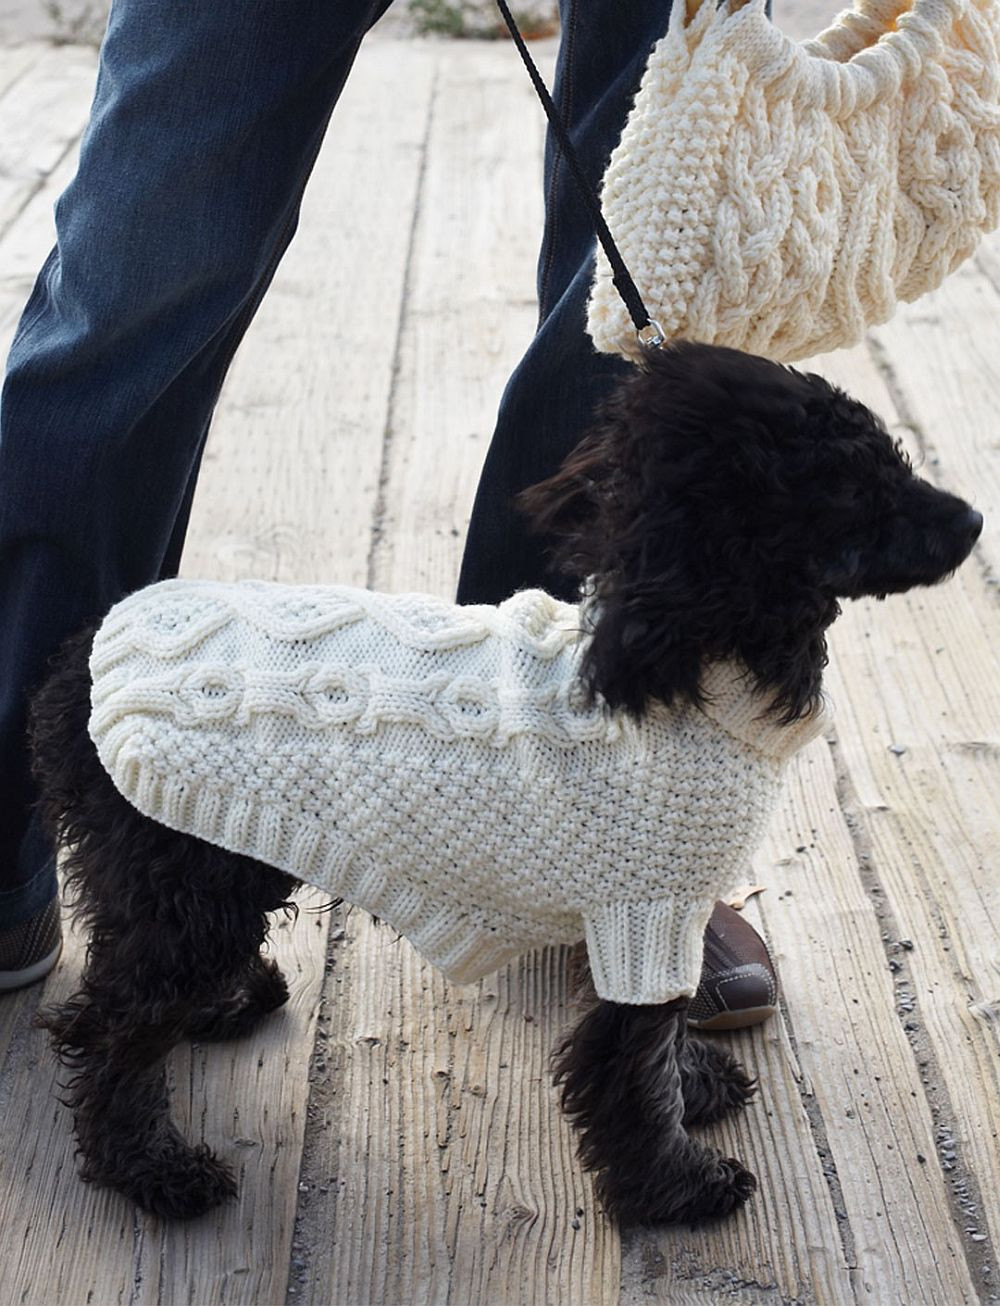 Dog Sweater Knitting Pattern Lovely Knitted Dog Sweaters to Keep Your Pooch Warm Of Superb 38 Pictures Dog Sweater Knitting Pattern